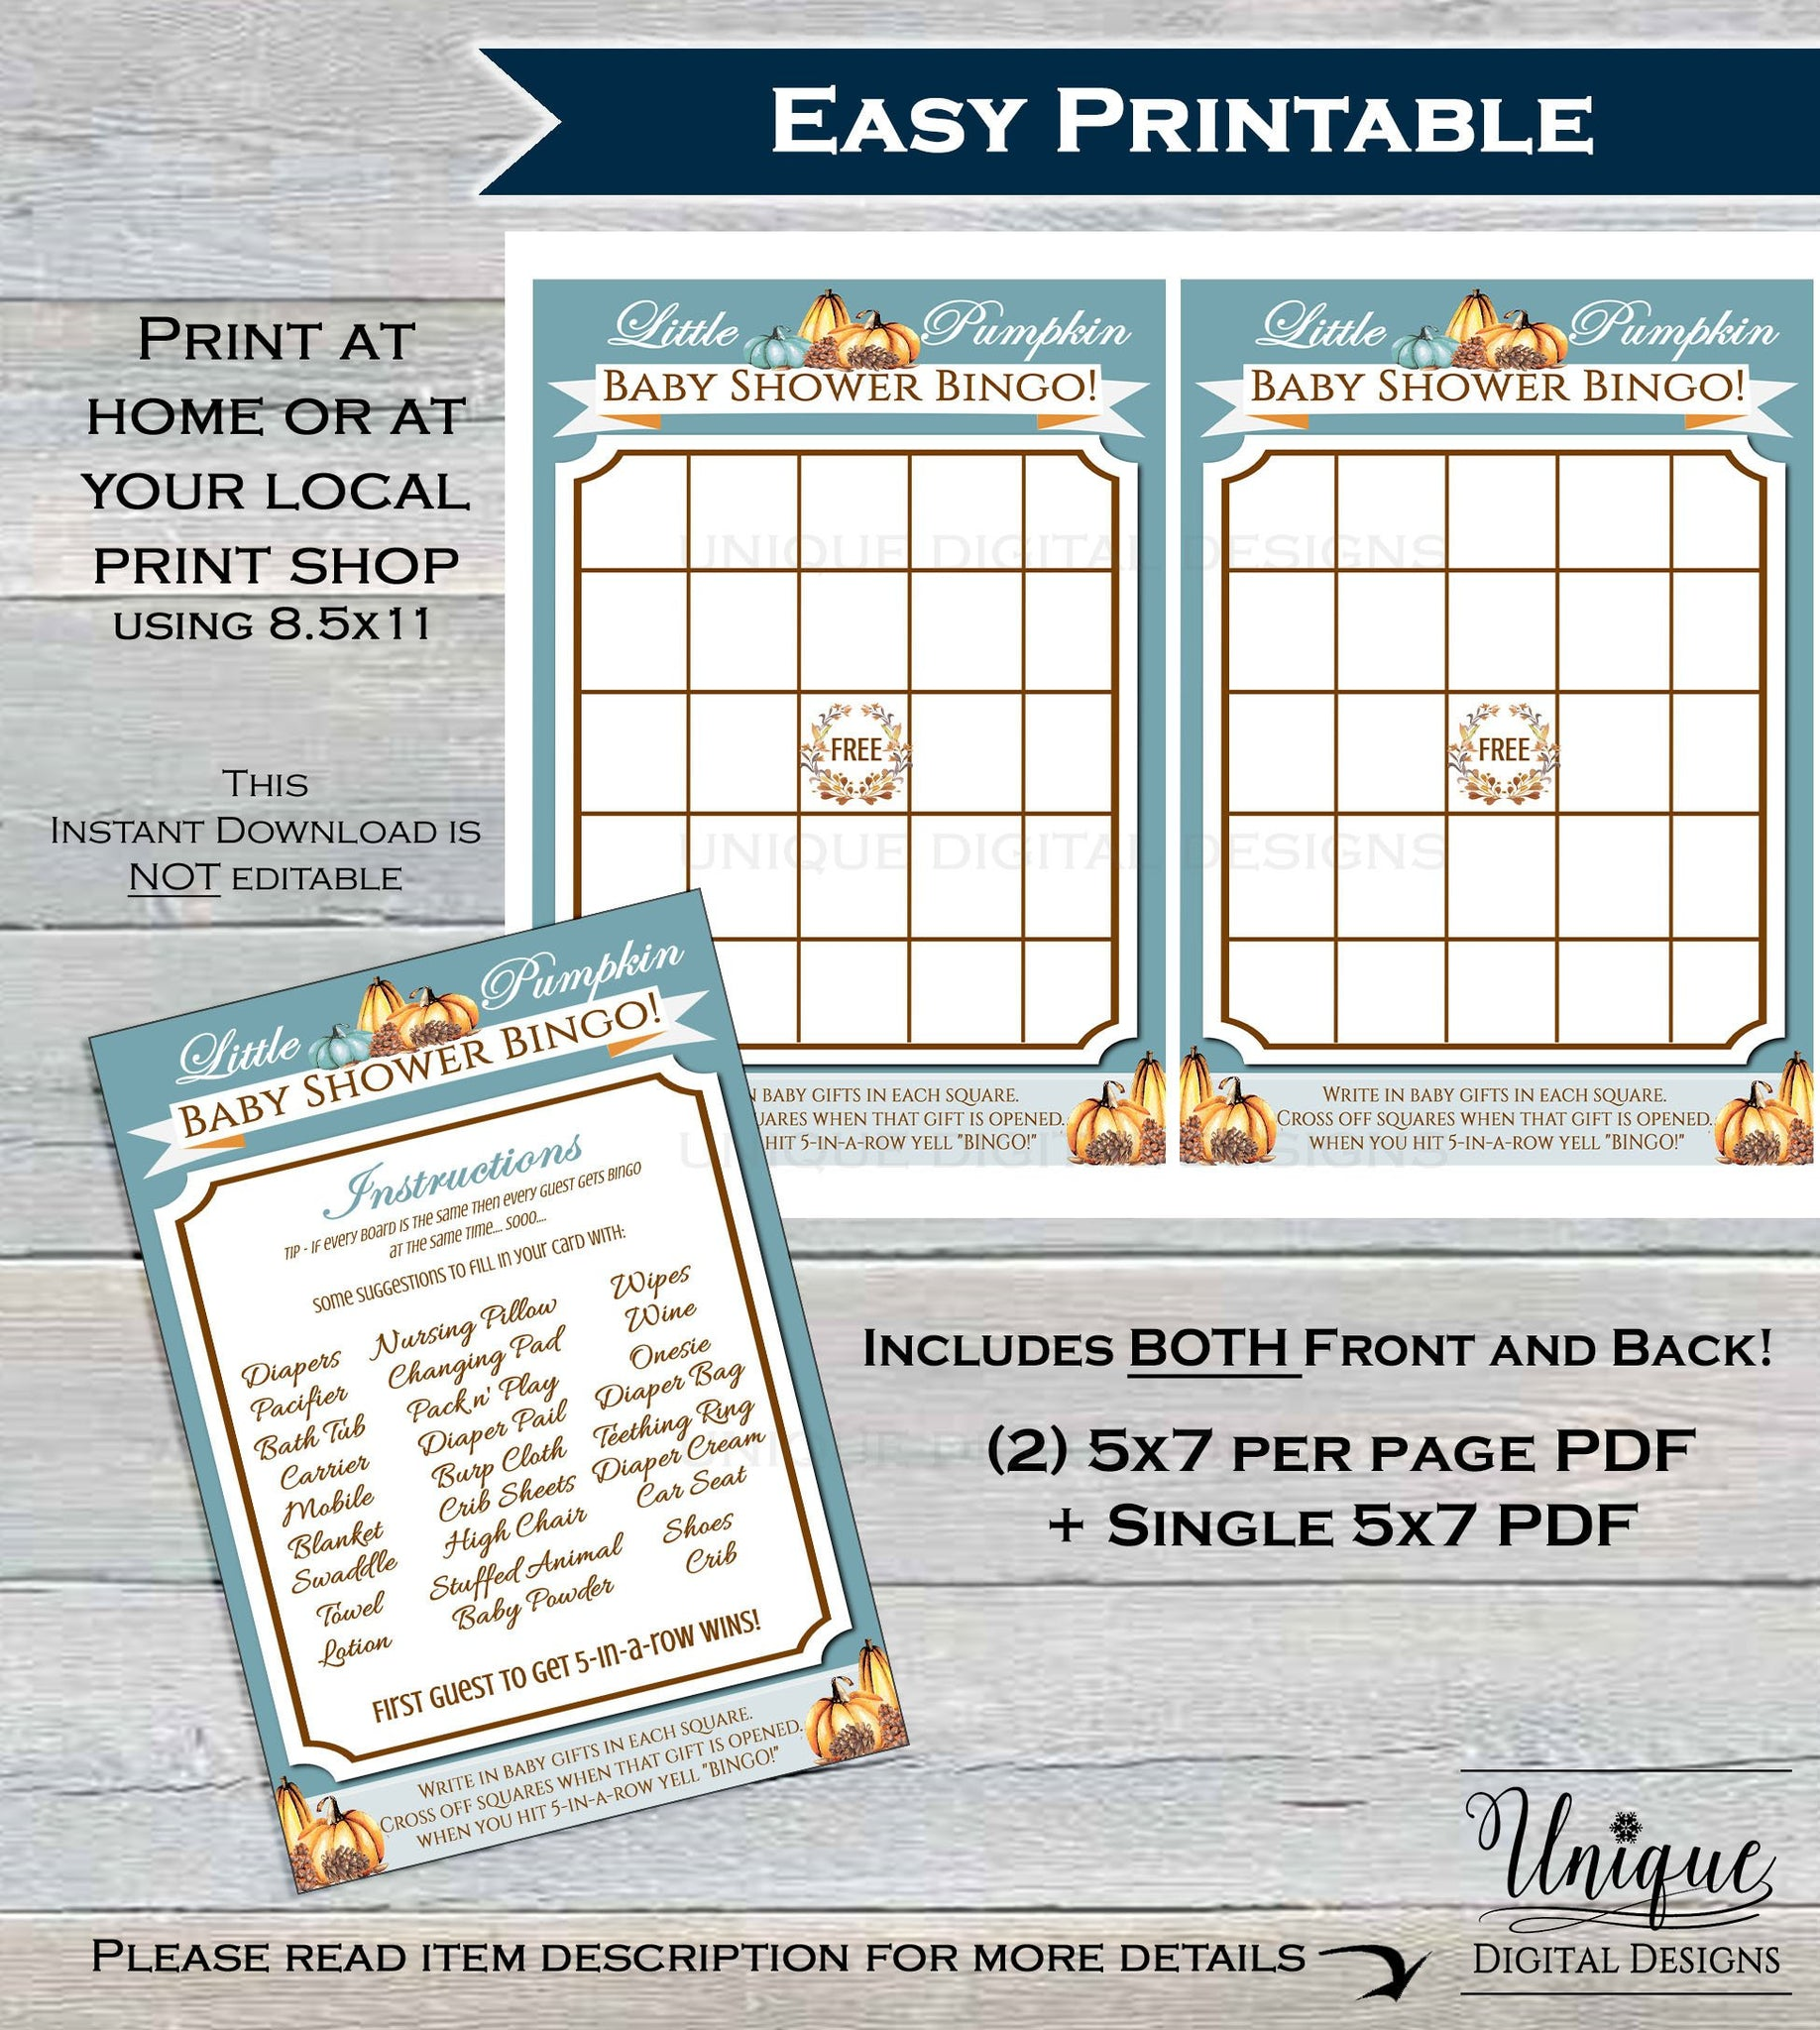 picture relating to Printable Baby Shower Bingo called Youngster Shower Bingo, Tiny Pumpkin Youngster Shower Video games, Bingo Printable, Youngster Shower Activity Board Little one, Blank Fill Inside of Customized Instantaneous Down load 5x7